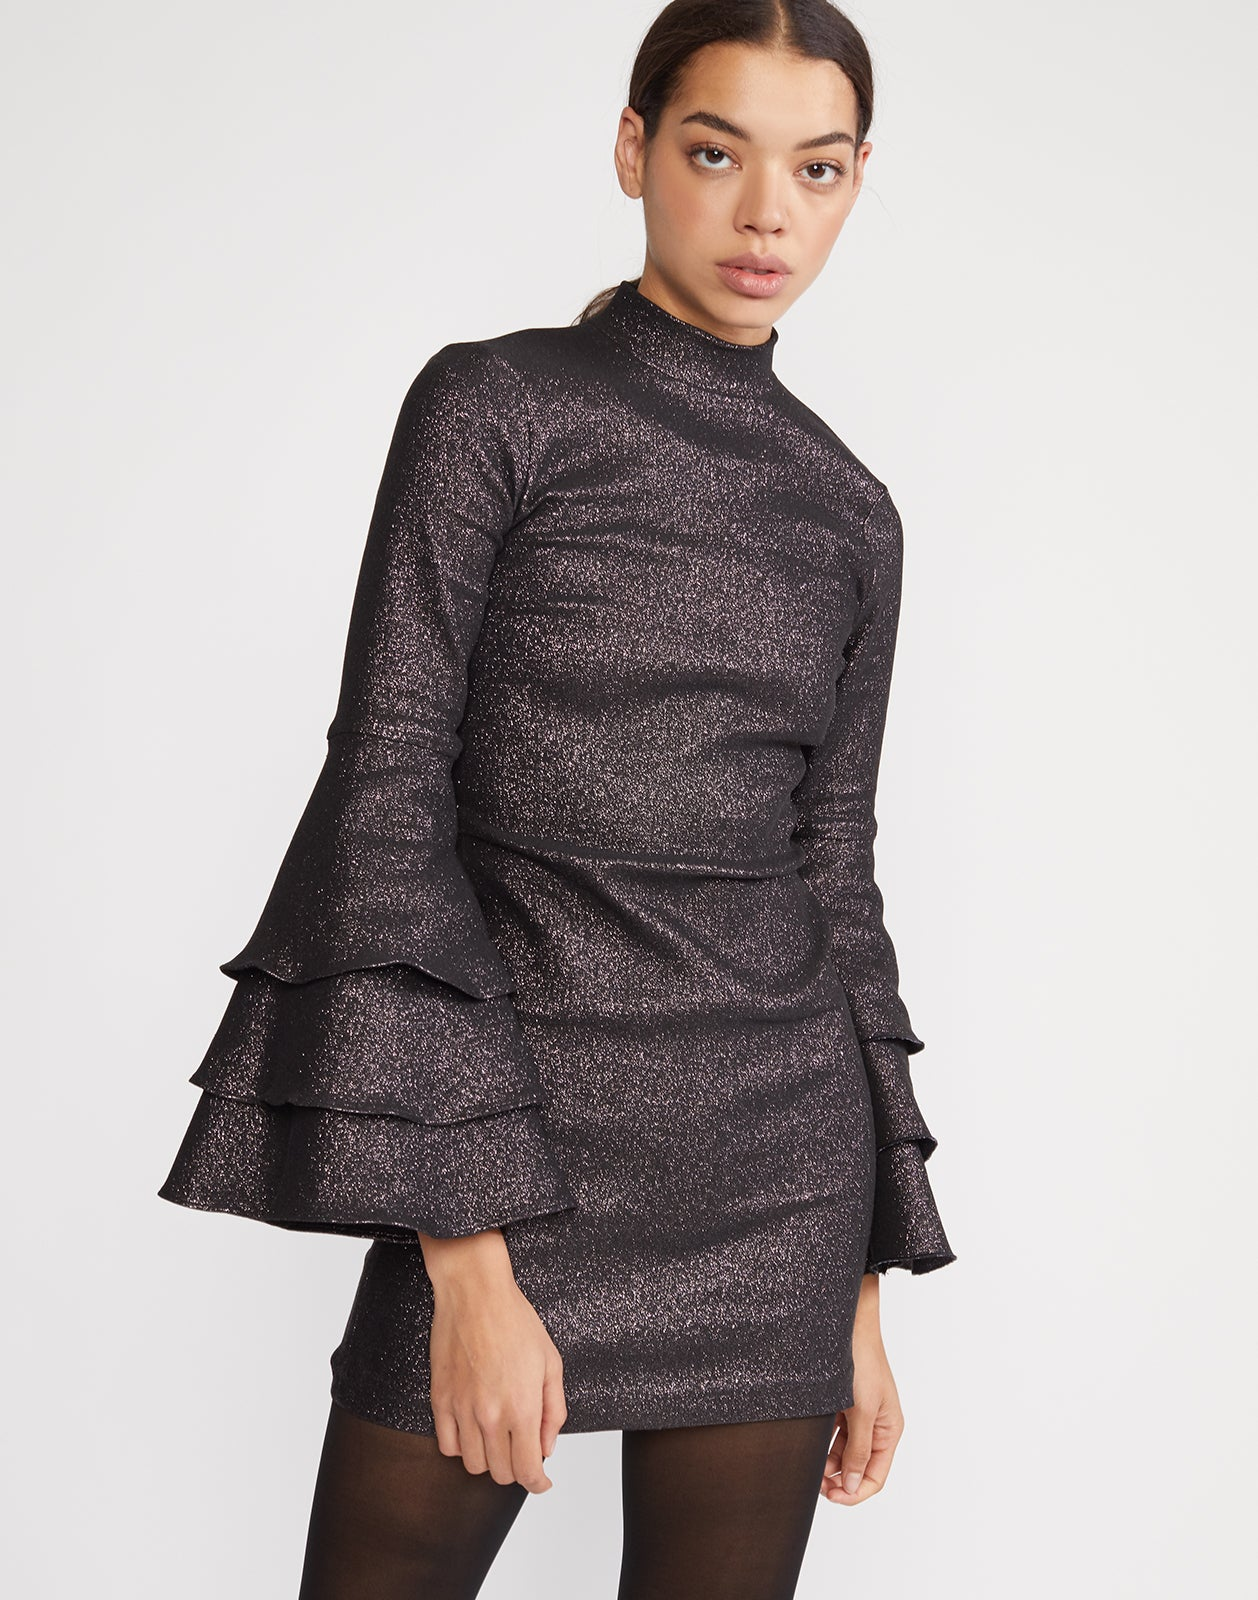 Front view of Natasha Shimmer Bell Sleeve Dress with high neck